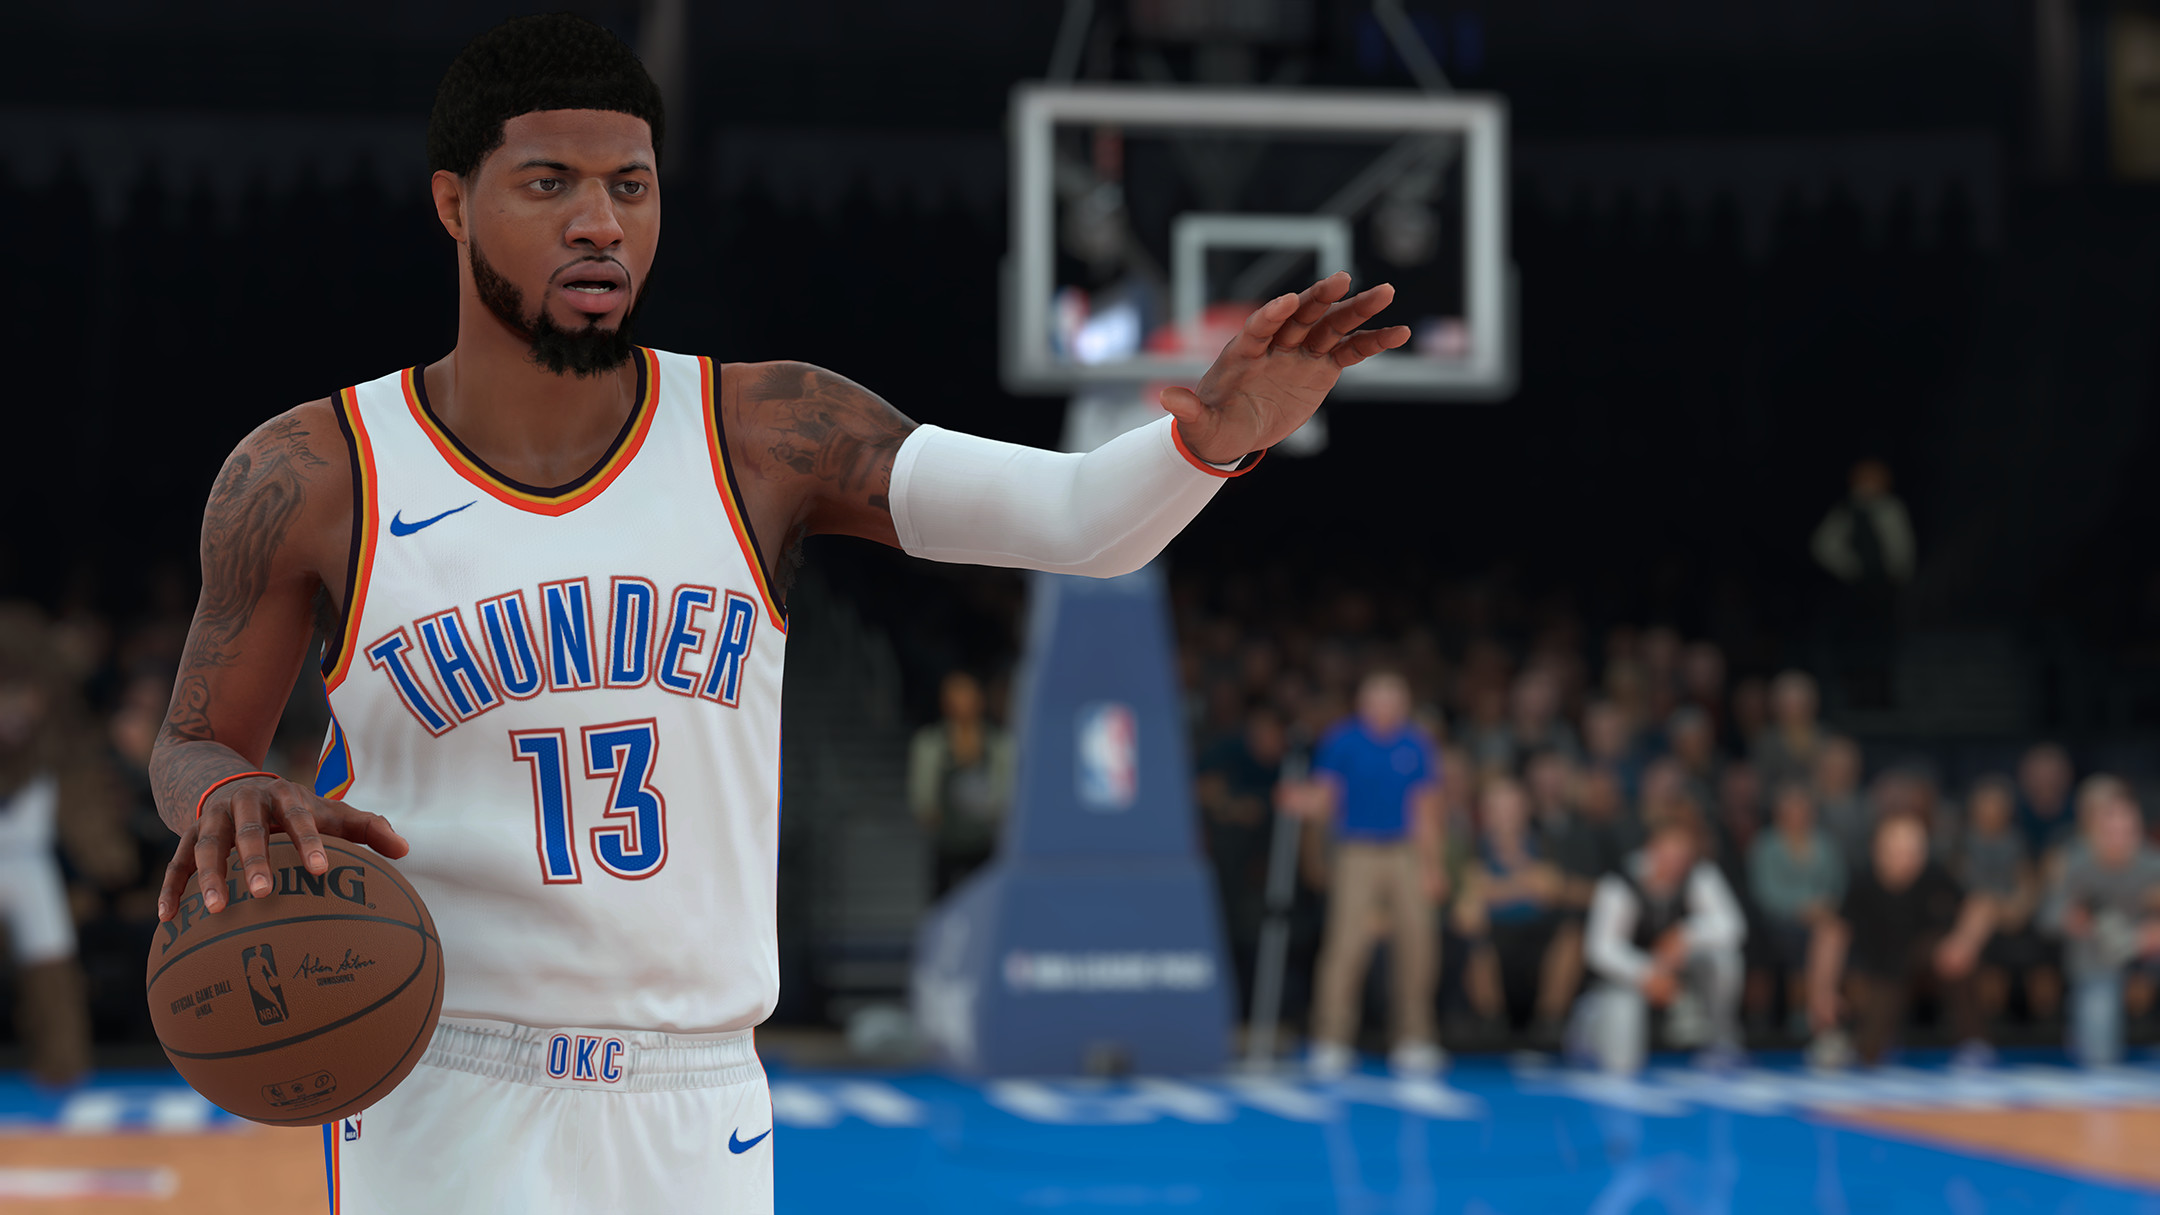 NBA 2K18 Update 1.04 Adds New Shoes & Fixes Bugs Across PS4, Xbox One |  Player.One